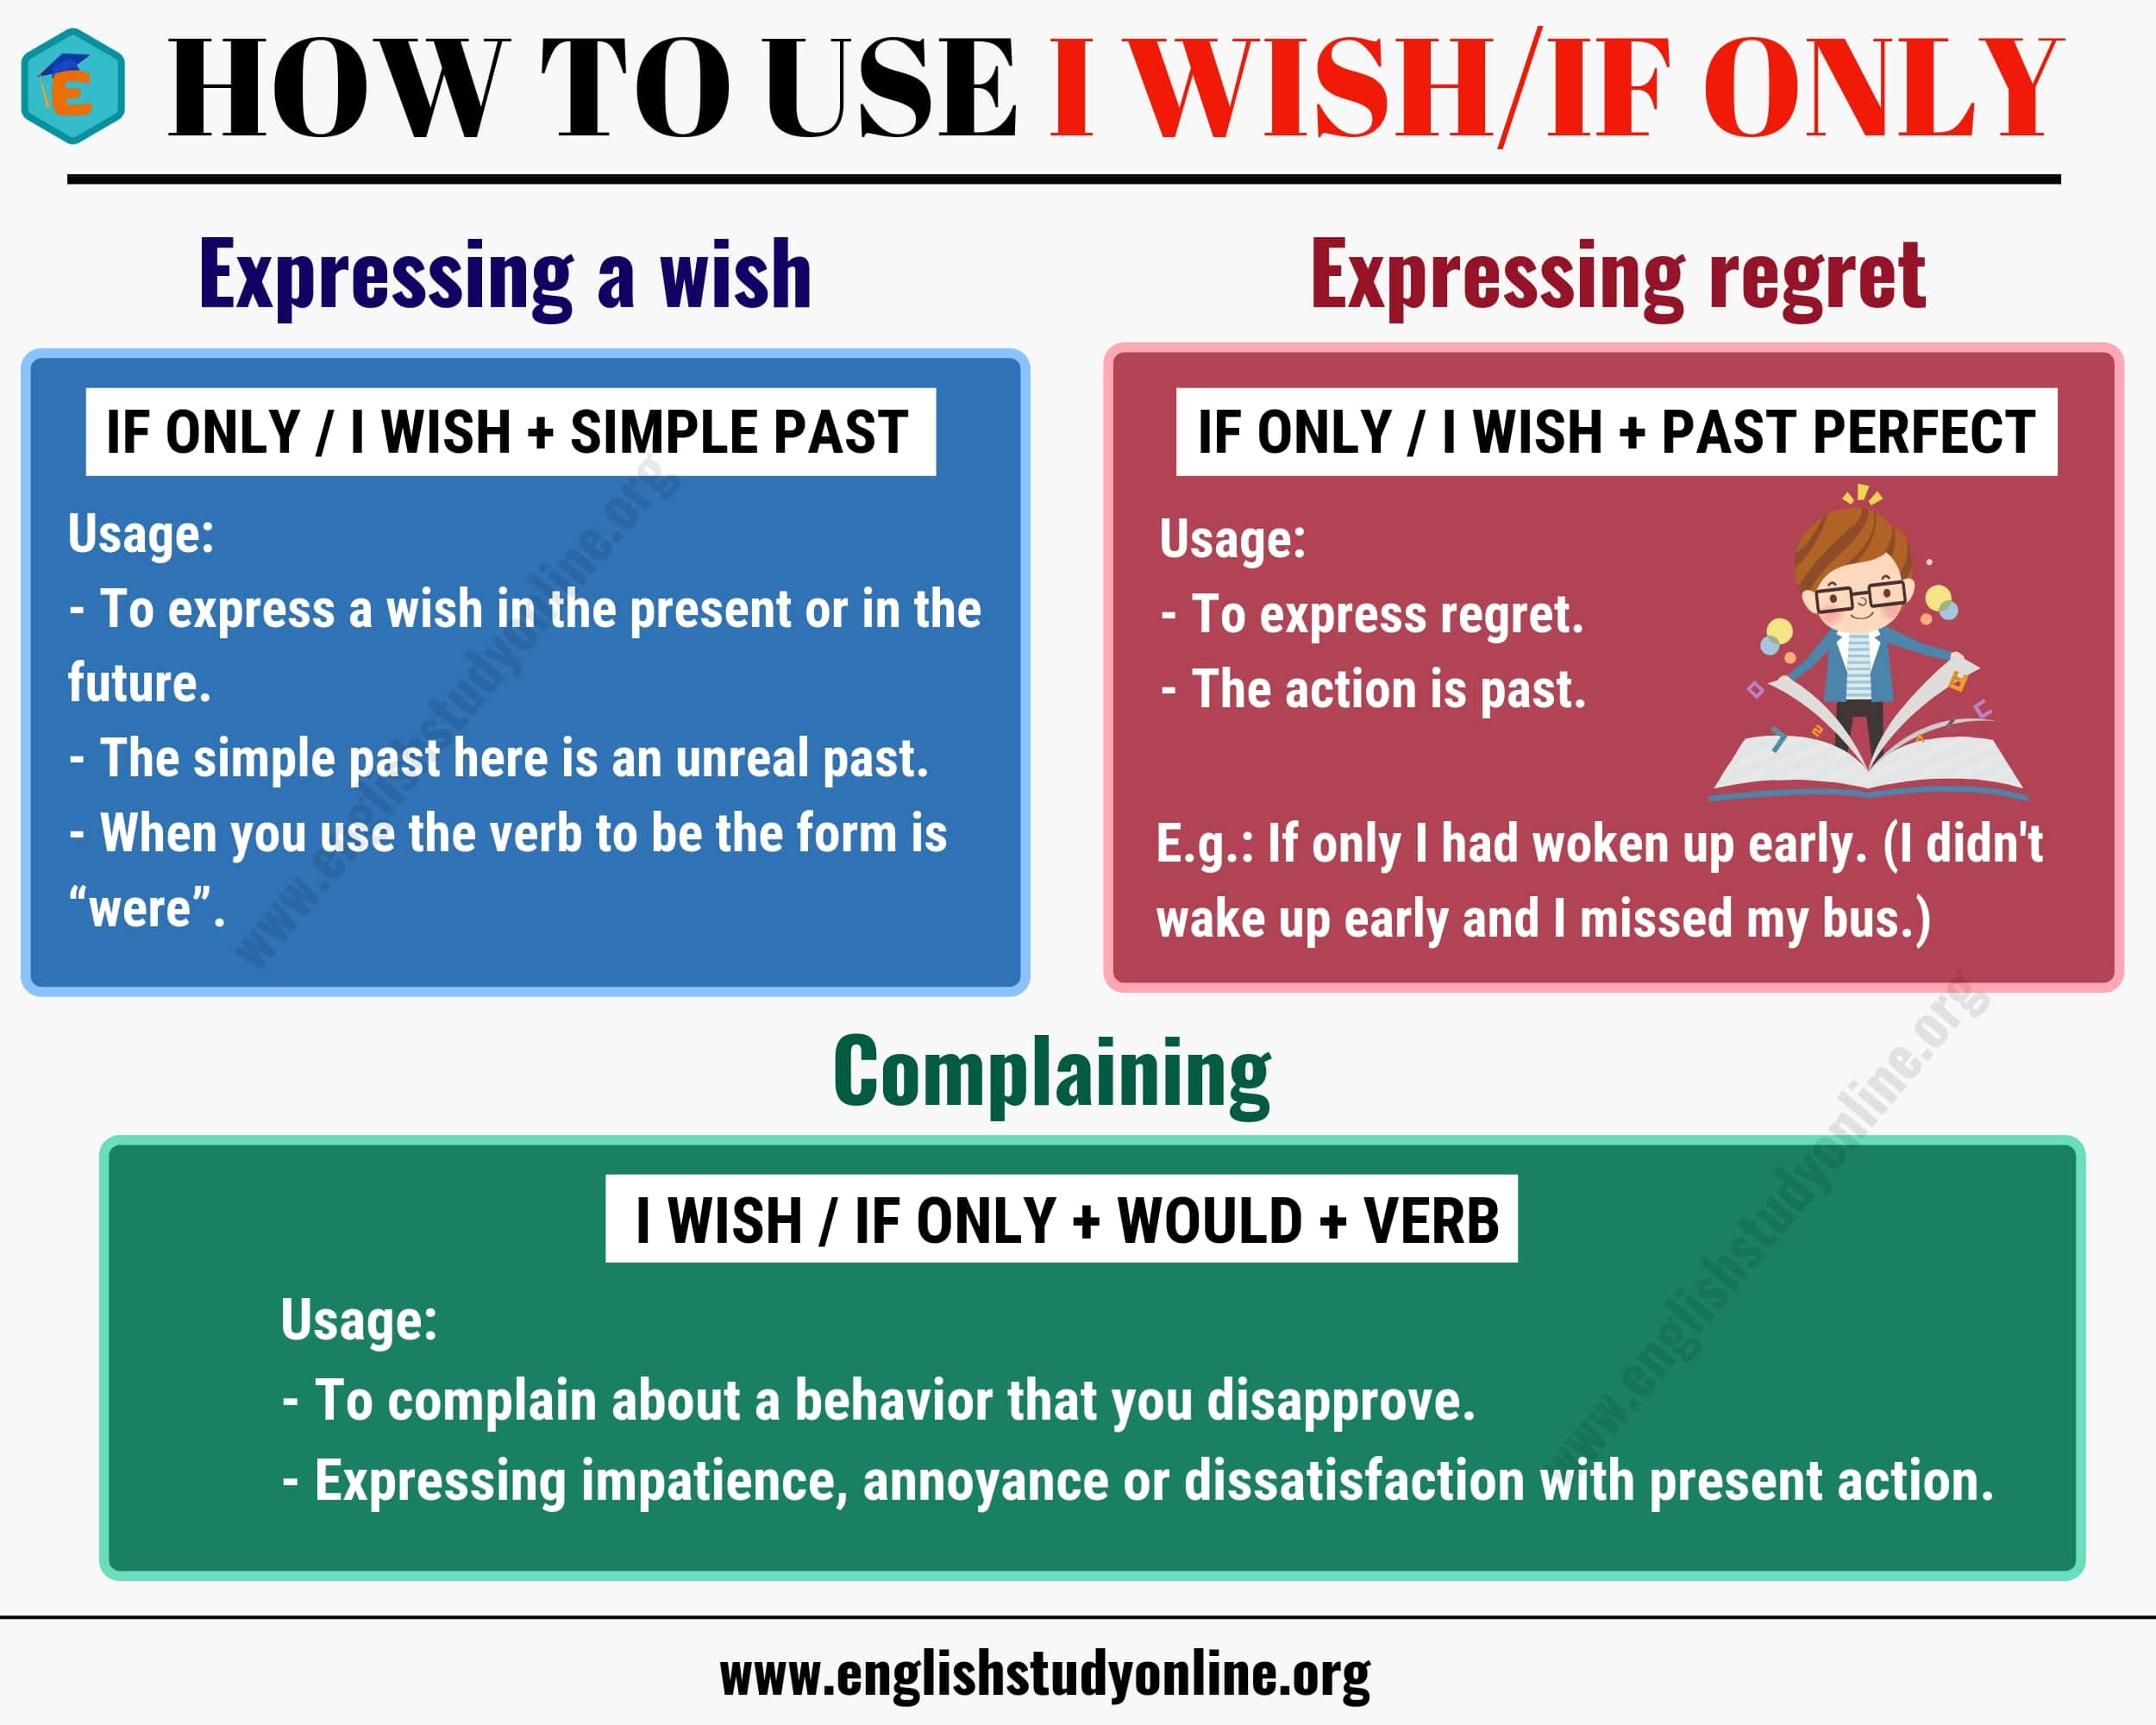 How to Use I Wish